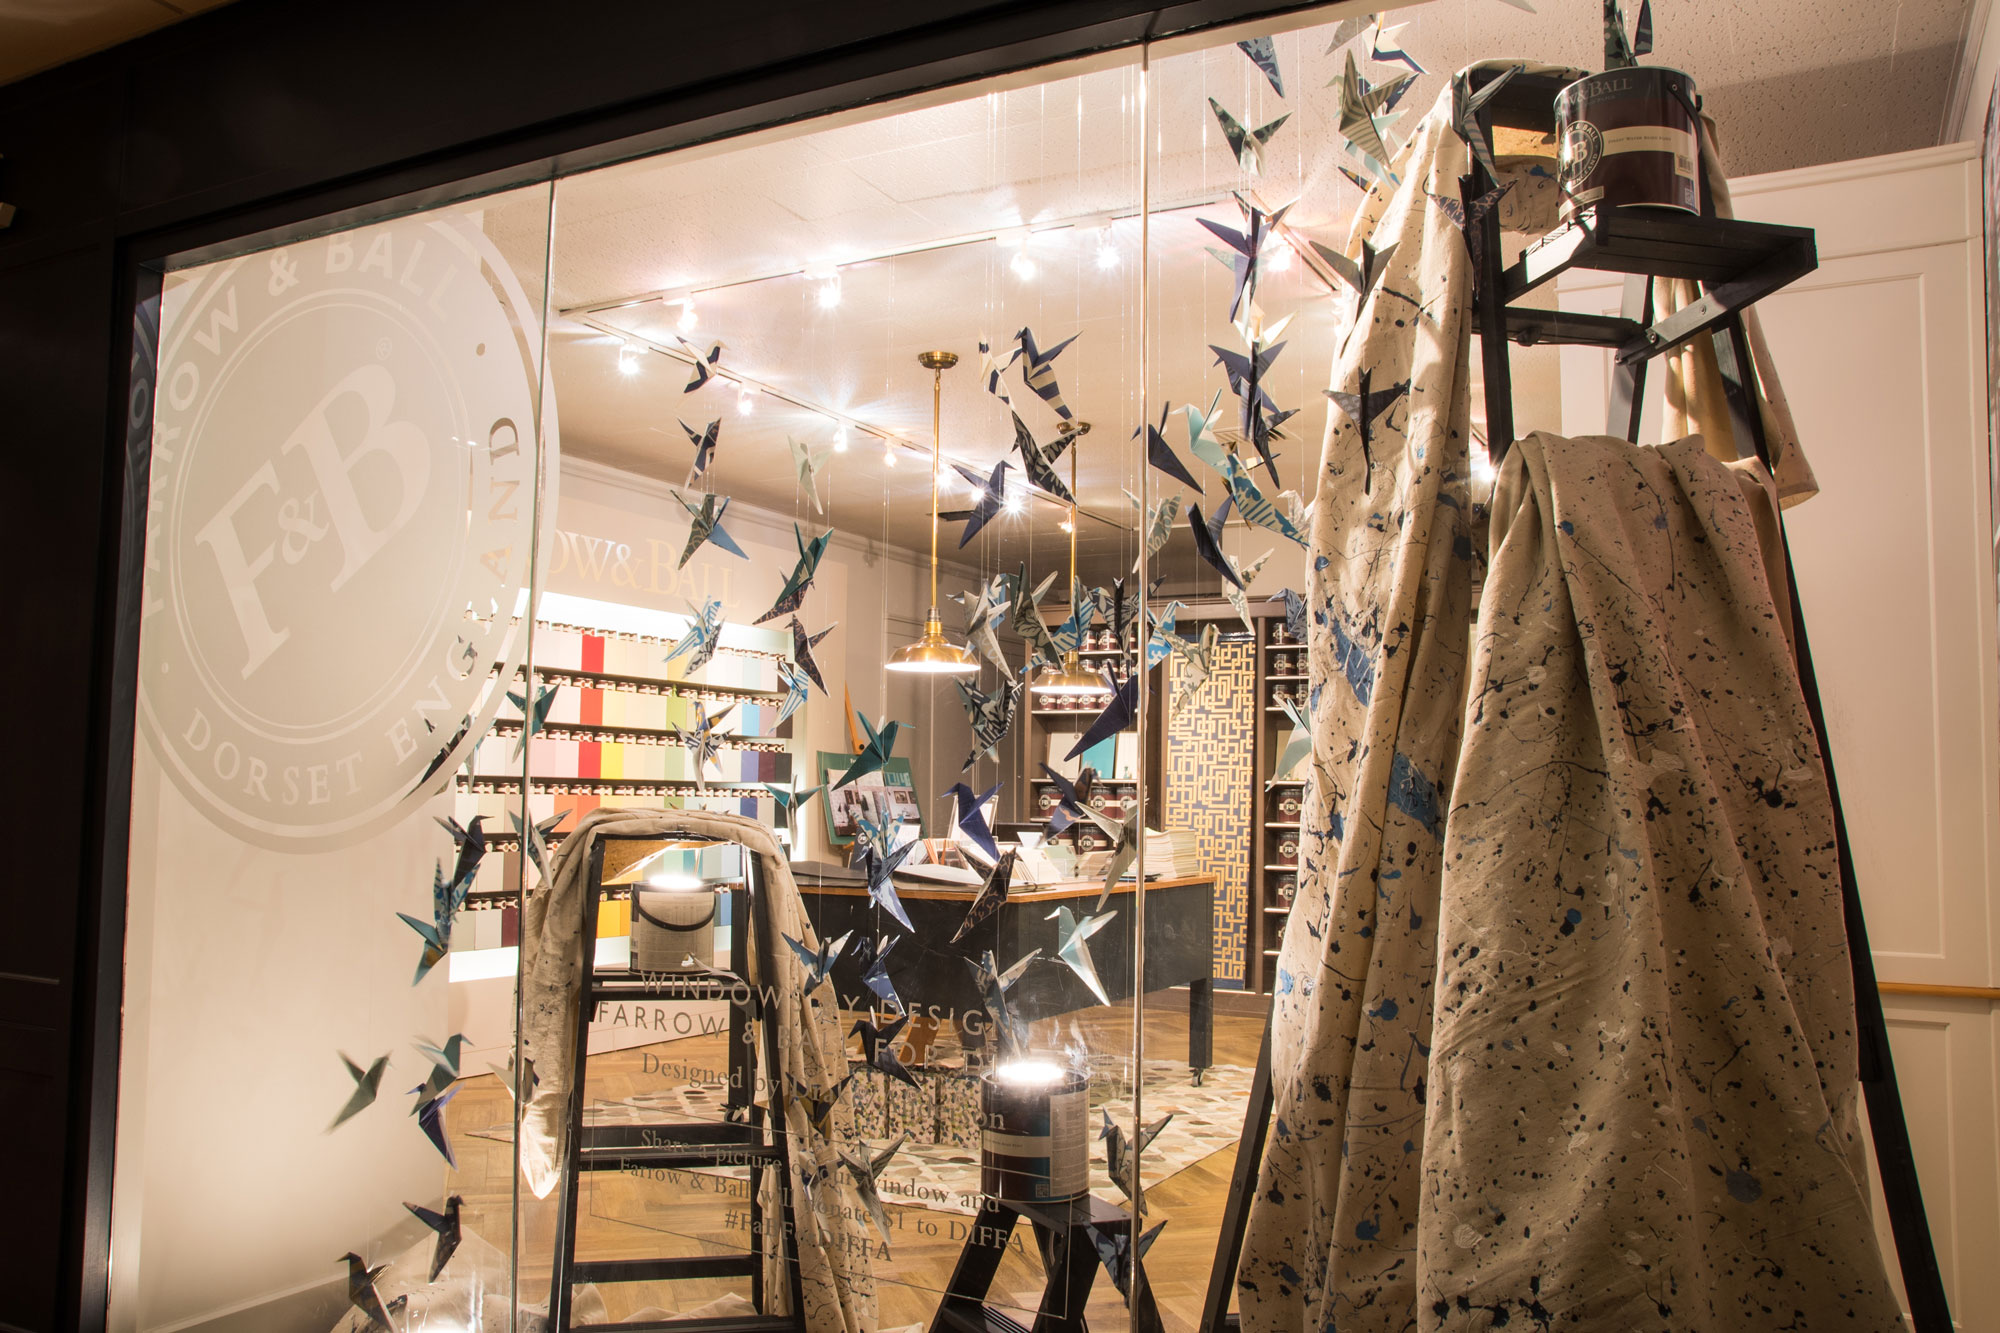 Festive window displays by farrow ball for diffa for Farrow and ball los angeles